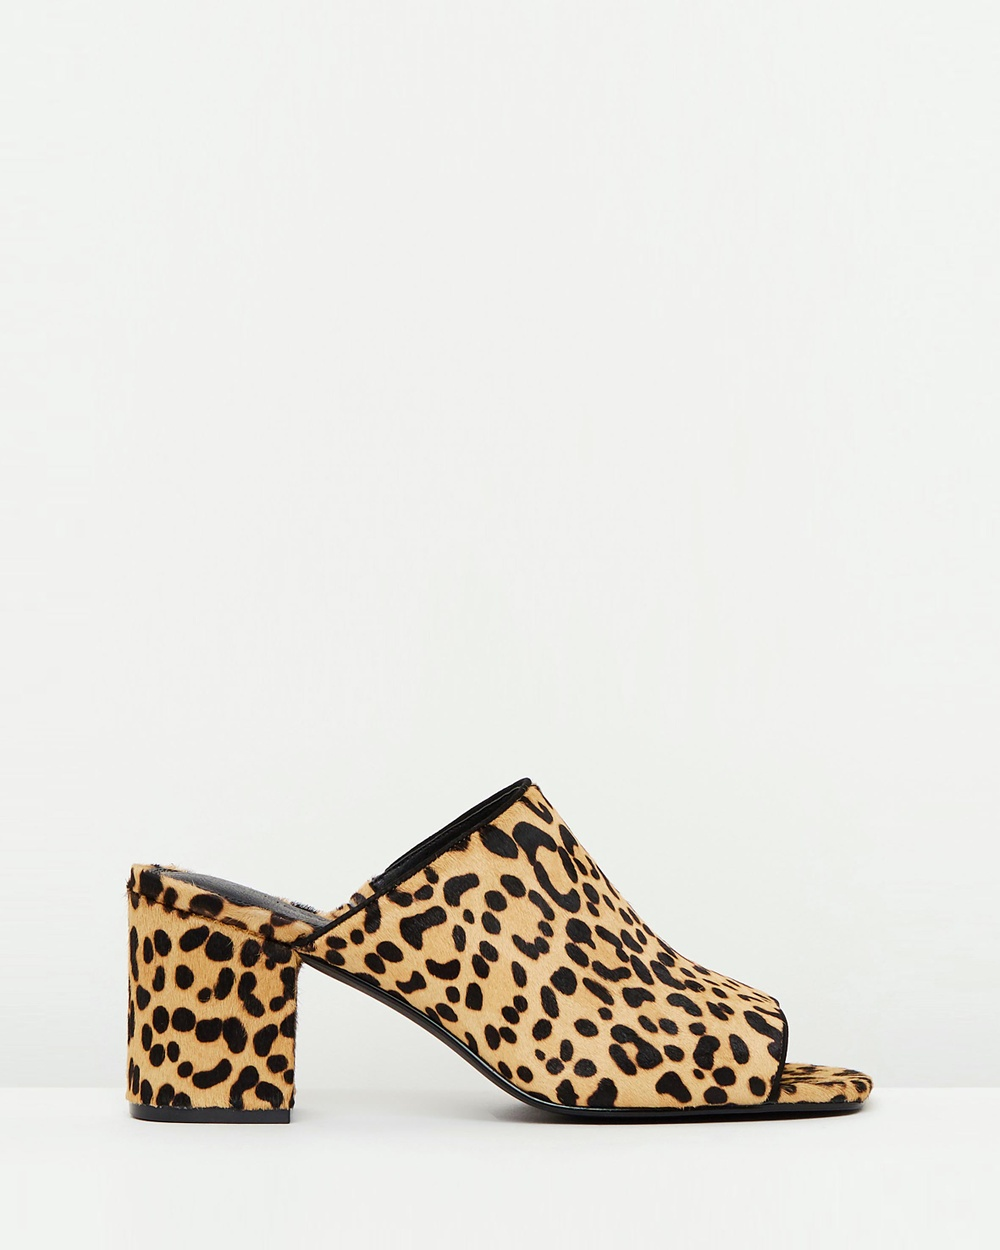 Atmos & Here ICONIC EXCLUSIVE Em Leather Mules Mid-low heels Leopard ICONIC EXCLUSIVE Em Leather Mules